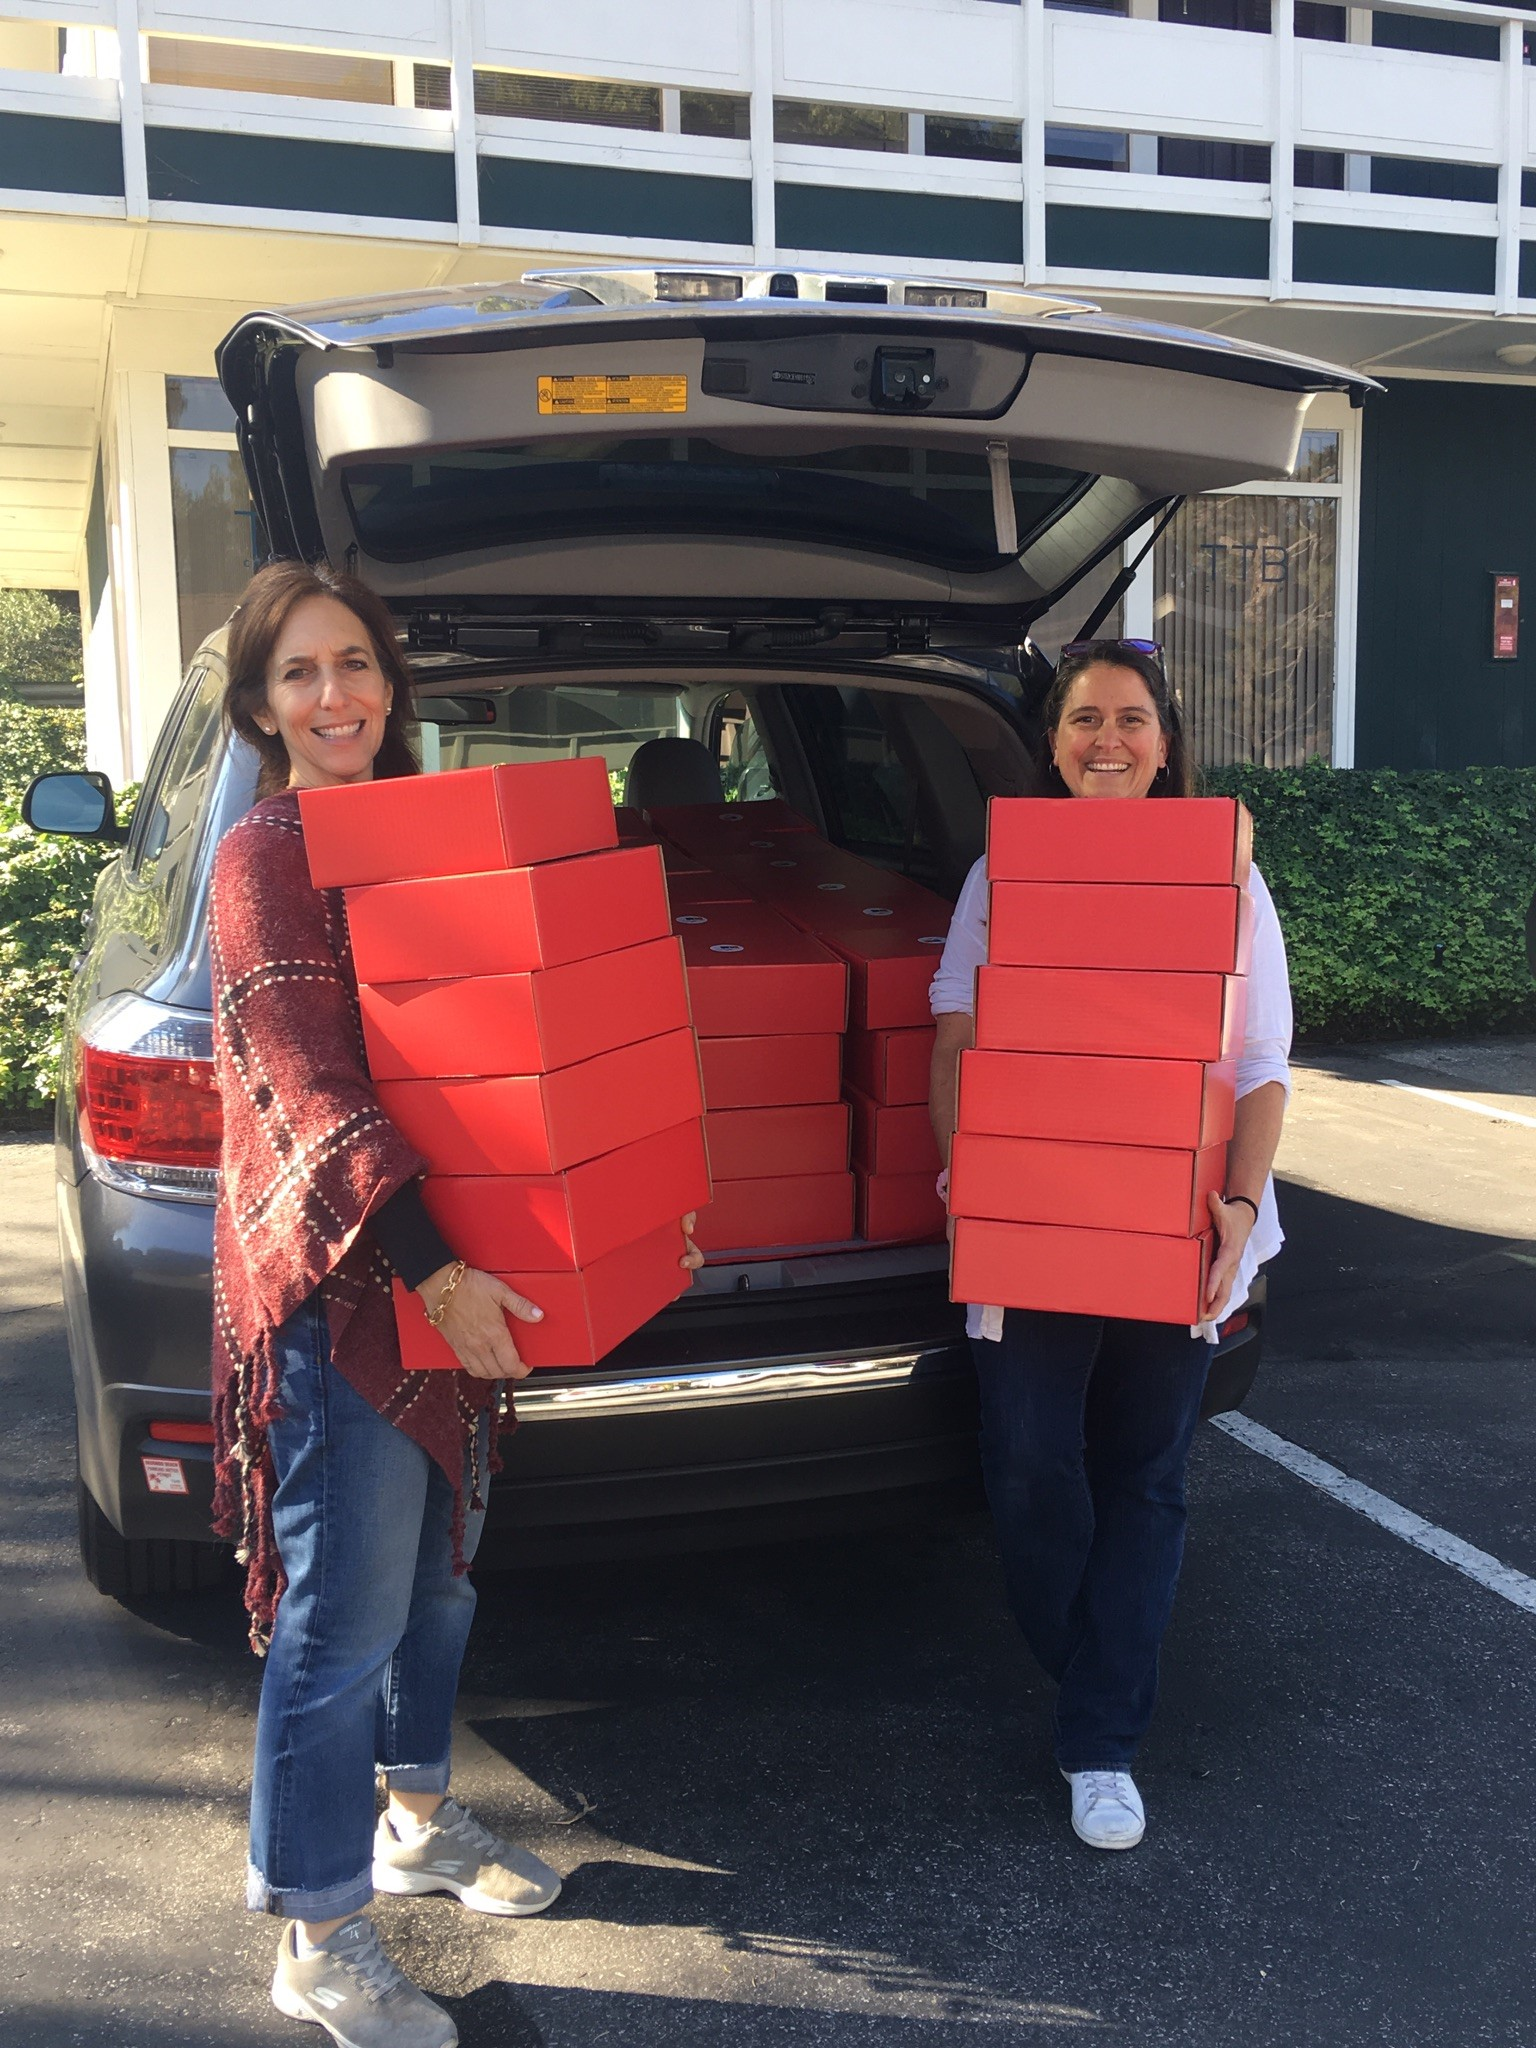 First delivery on its way by Founder and President Lauren Dennis-Perelmuter [left] and Volunteer Director [right] for Art To Grow On's Holiday Art Box Campaign